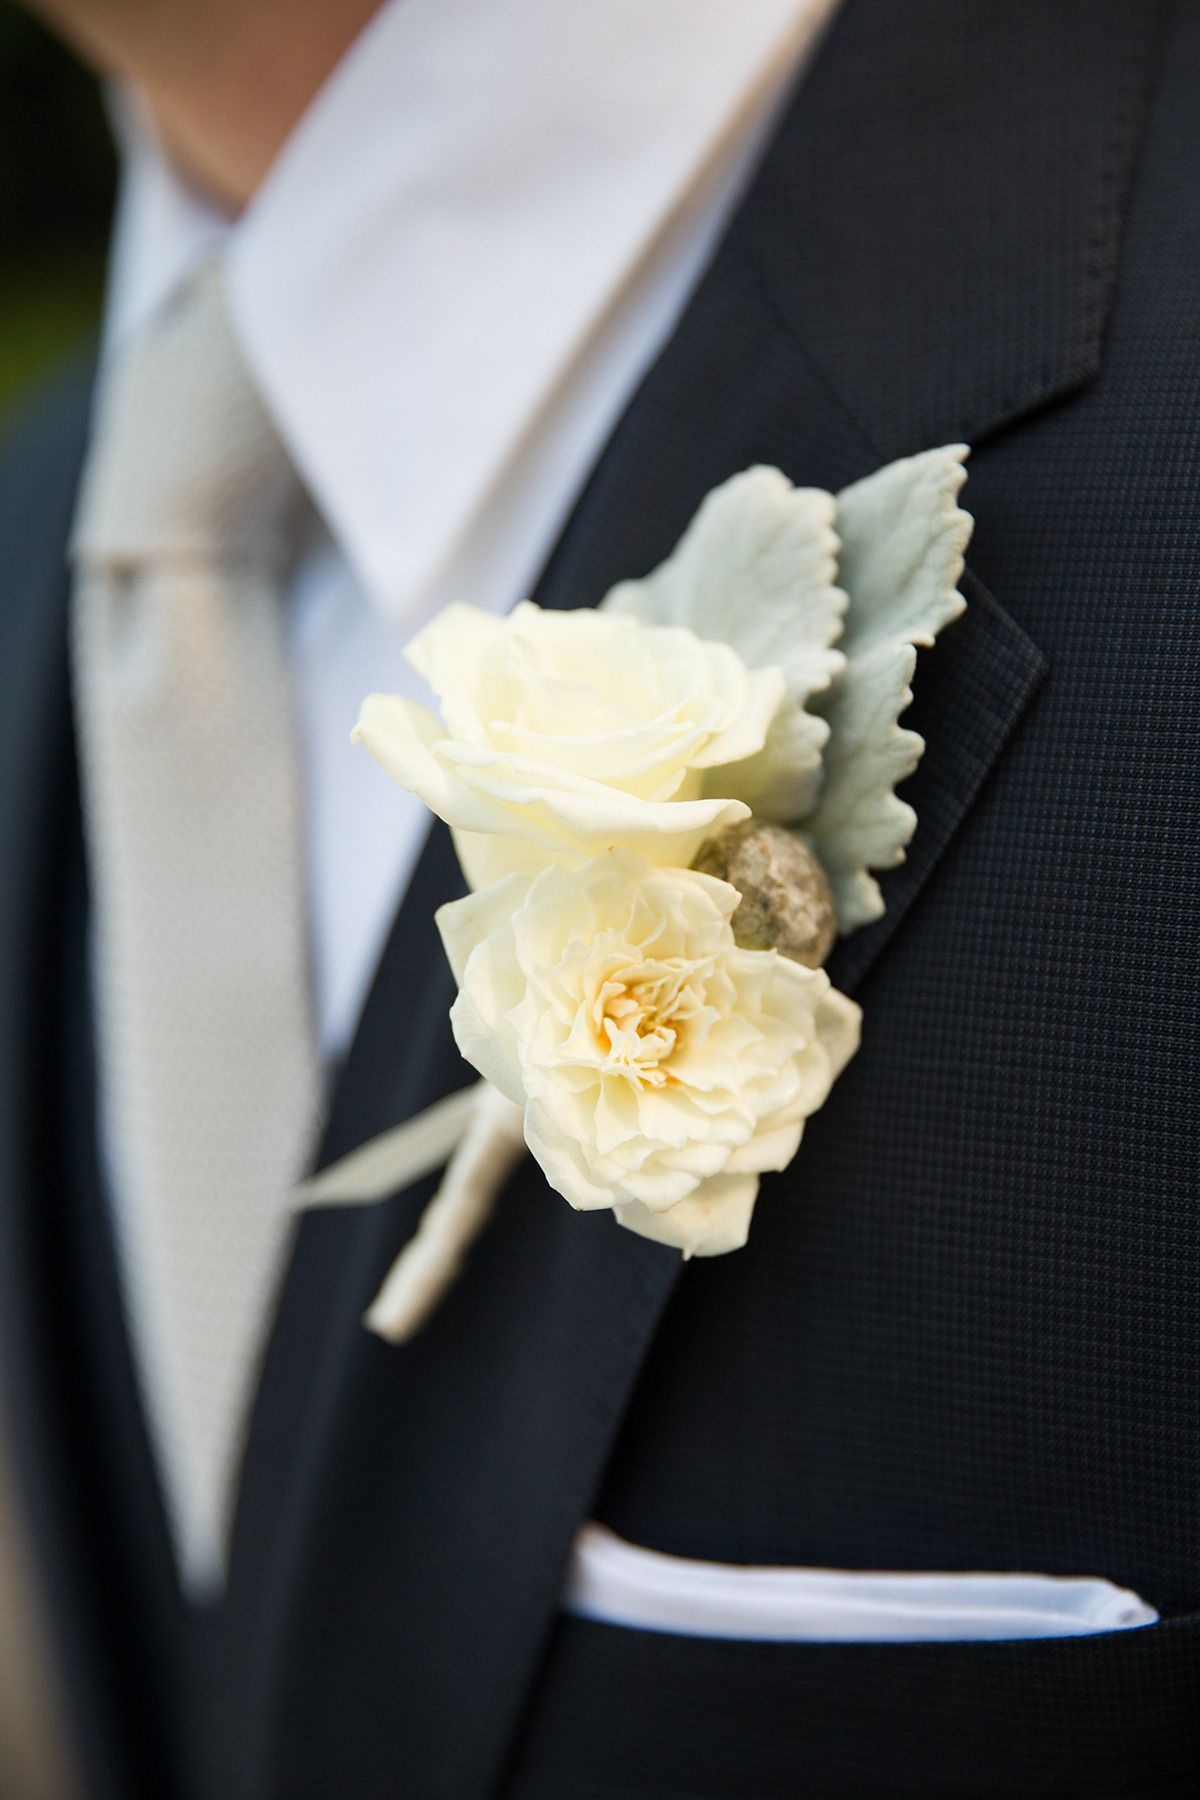 english garden rose boutonniere photography altura studio wwwalturastudiocom - Garden Rose Boutonniere